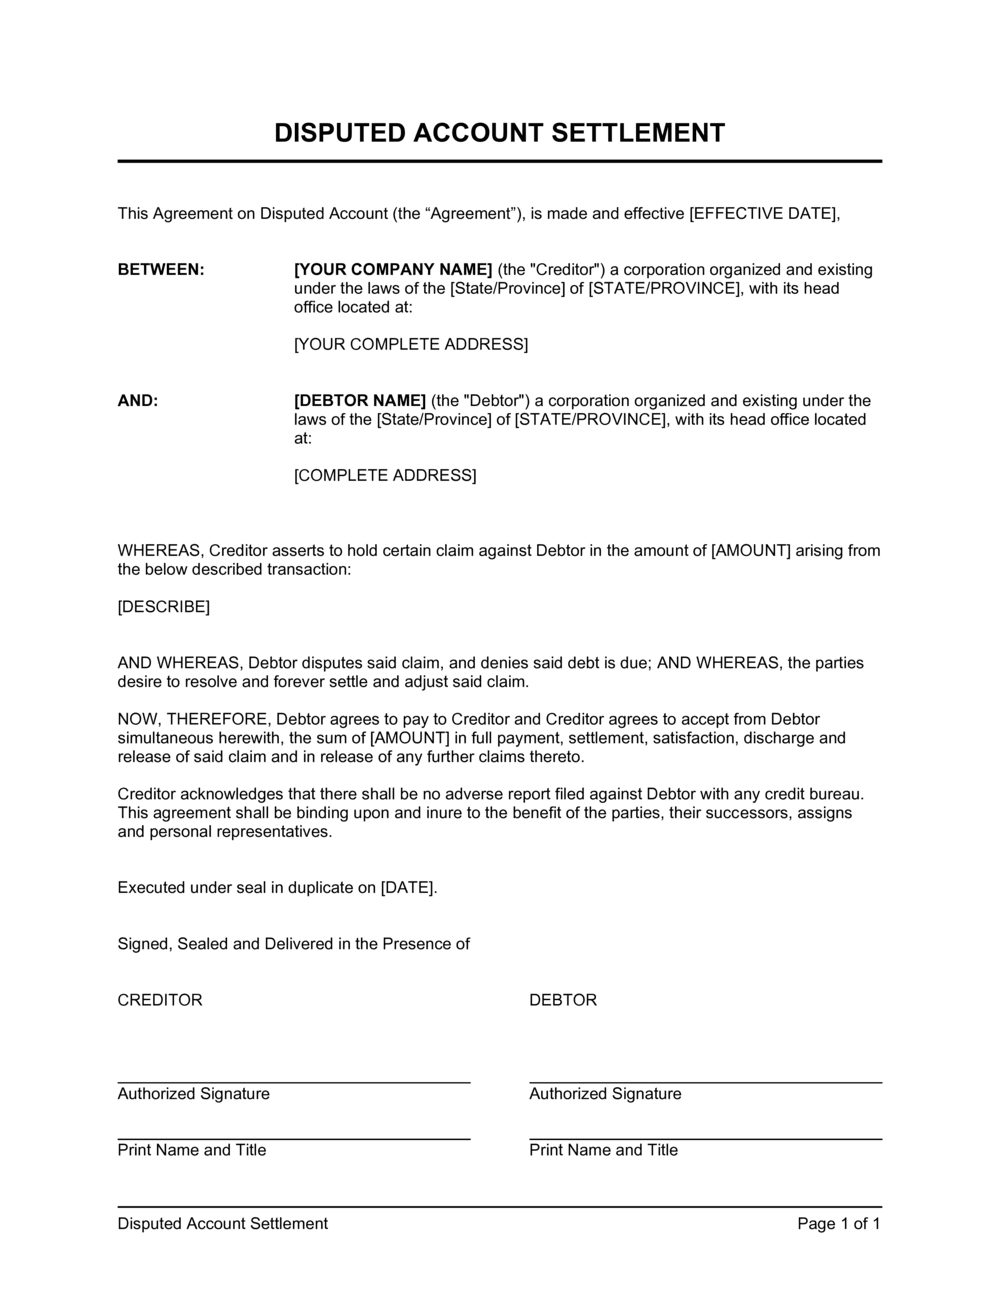 Business-in-a-Box's Disputed Account Settlement Template